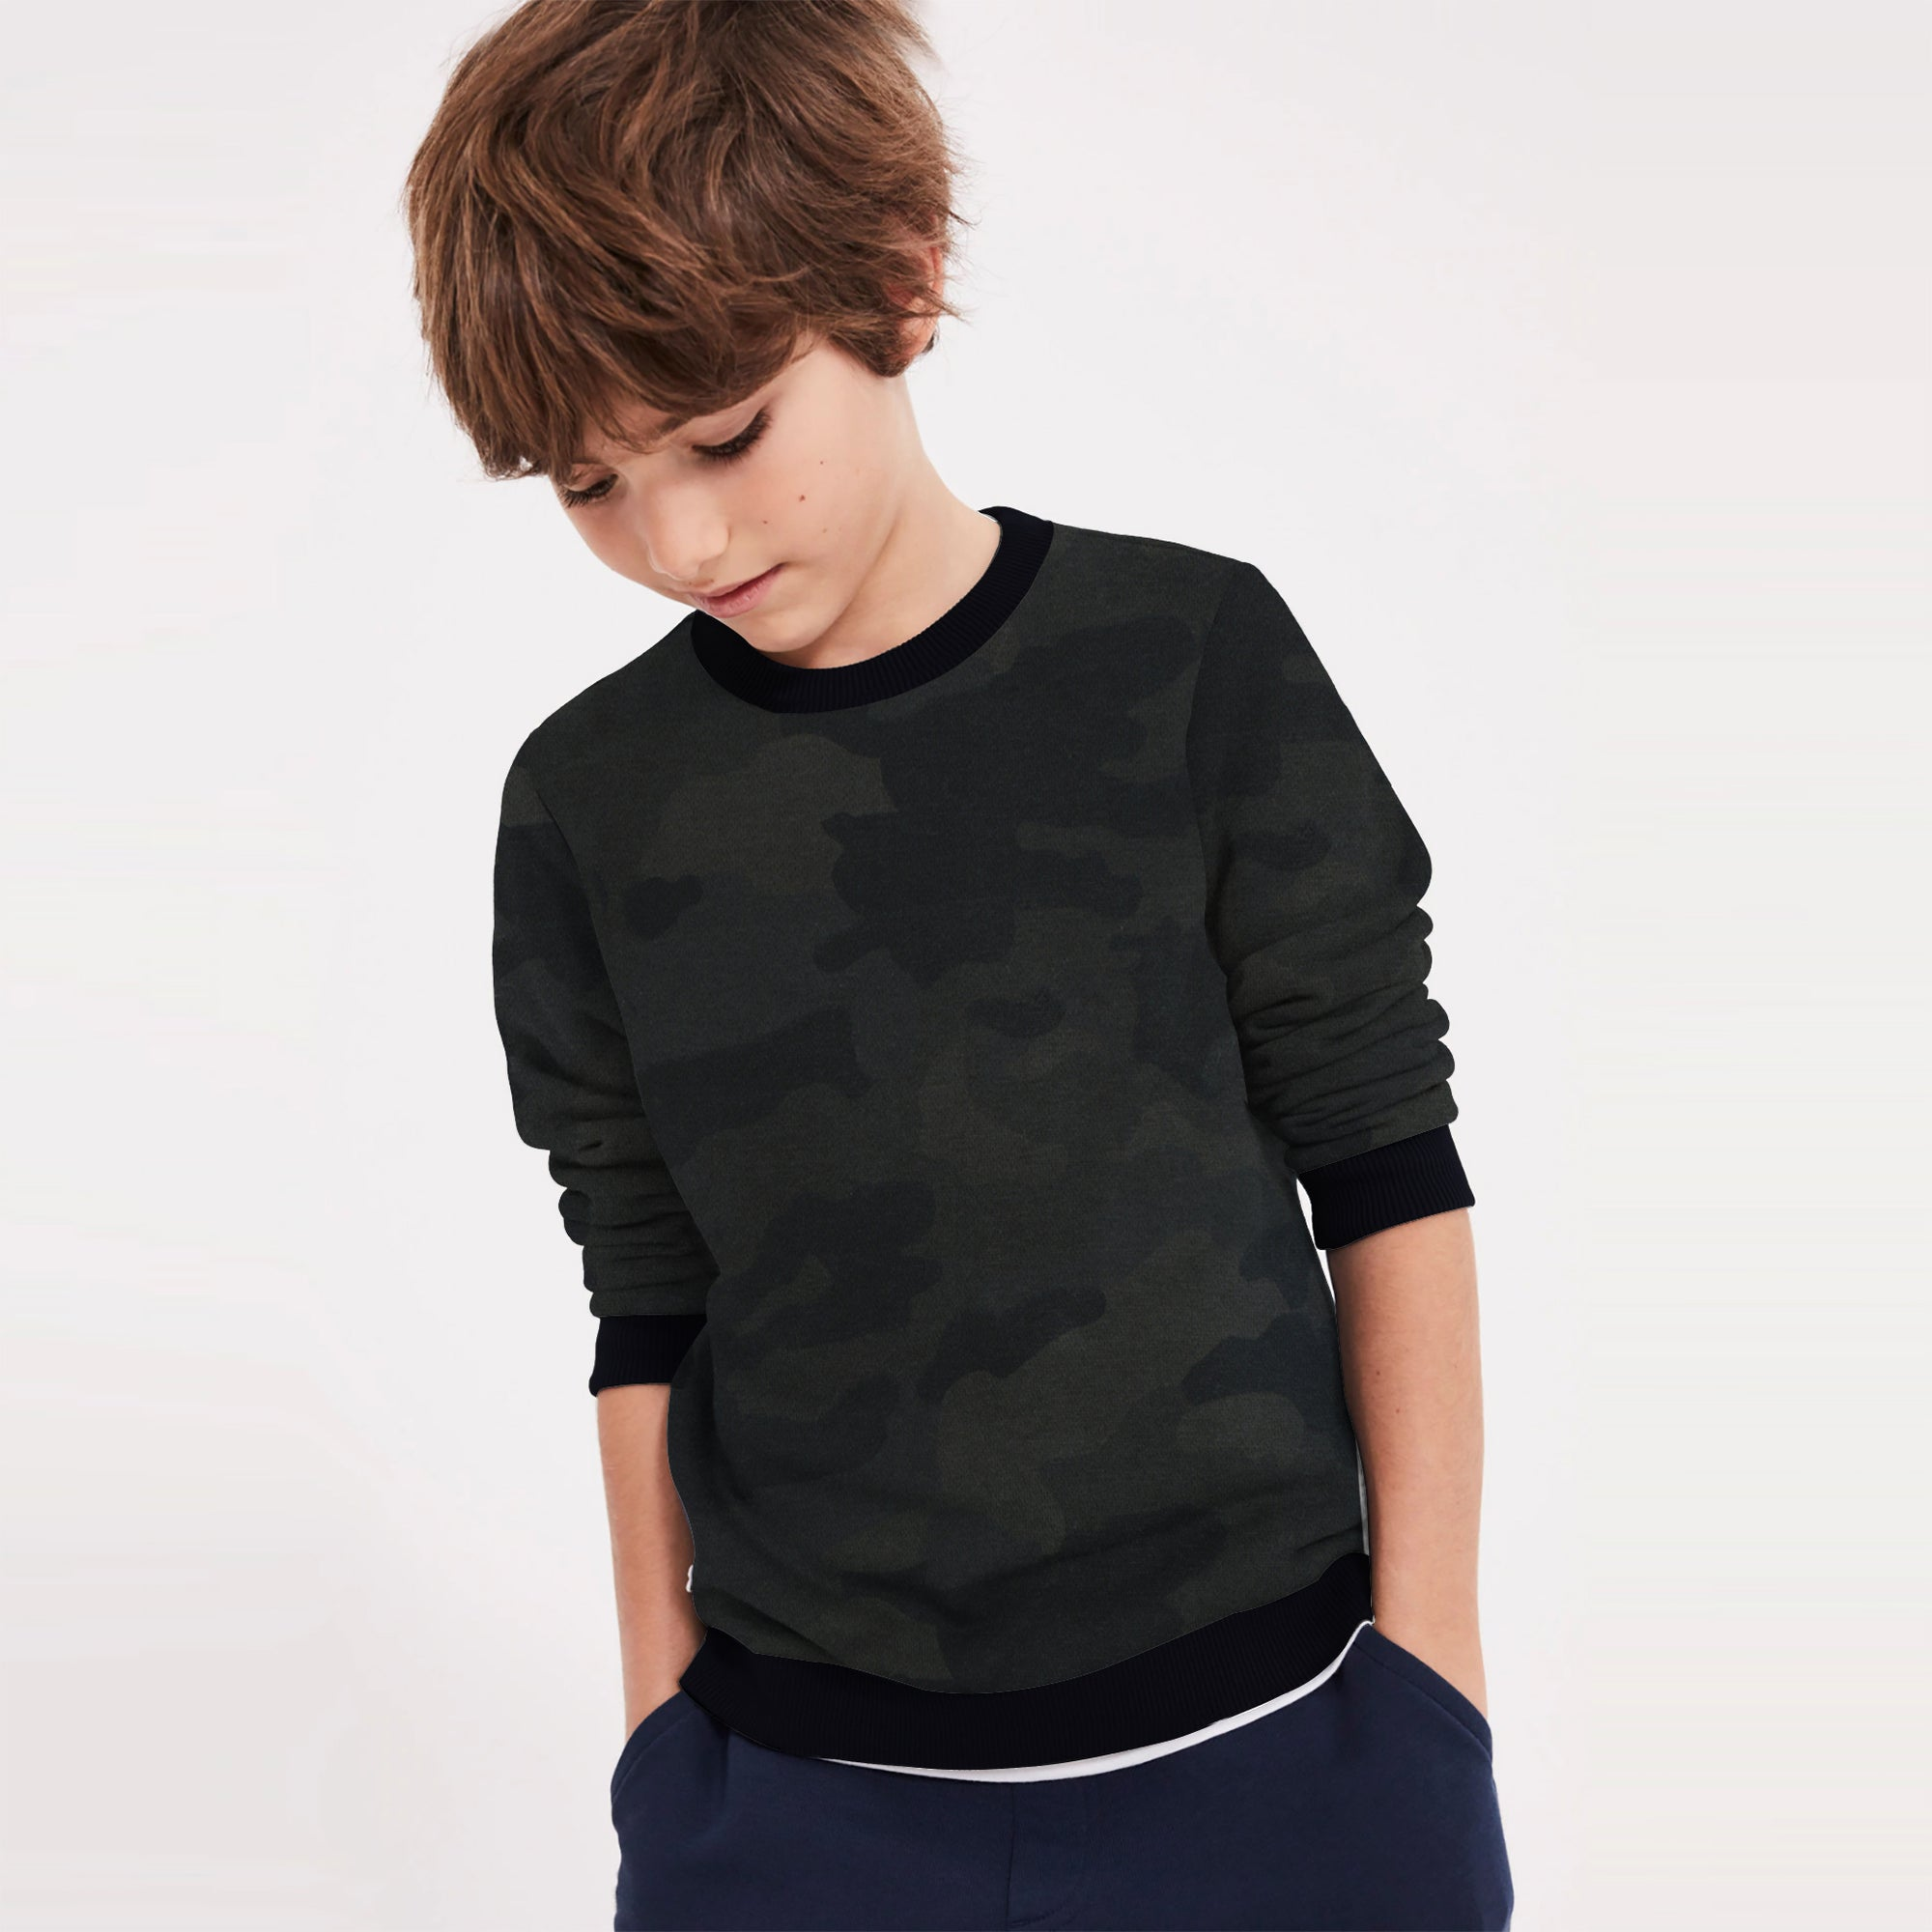 TH Terry Fleece Crew Neck Sweatshirt For Kids-Allover Print-SP774